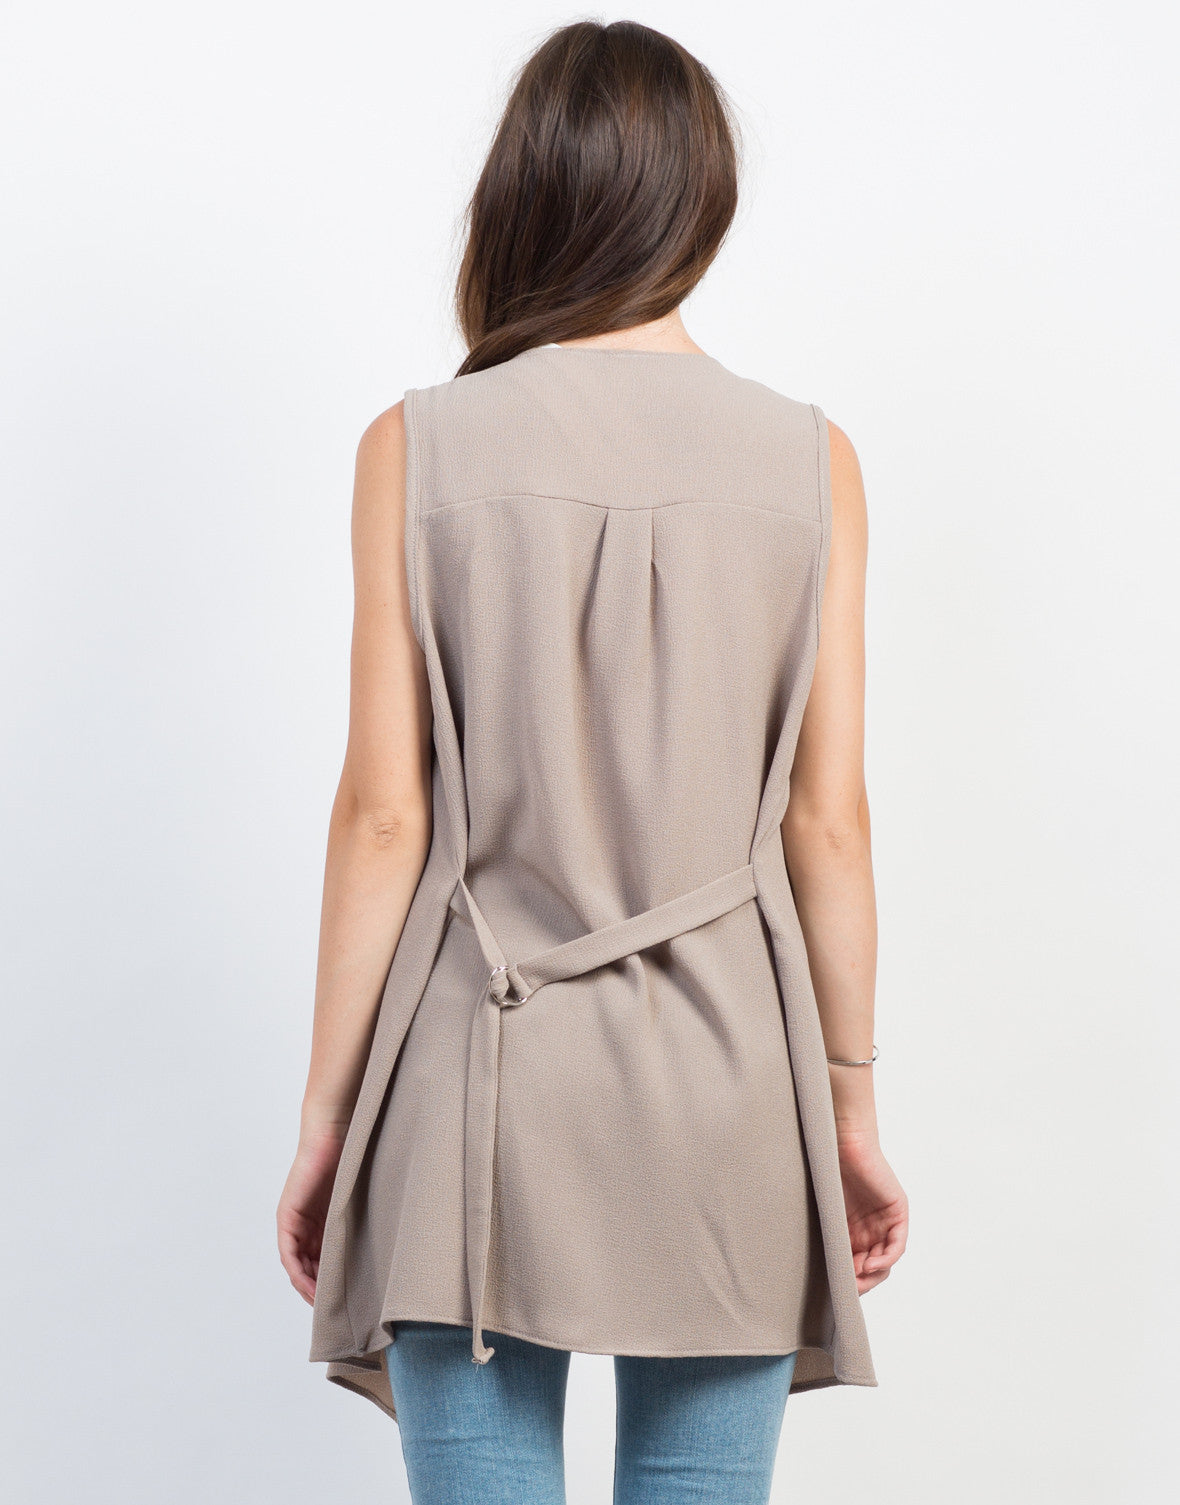 Back View of Flowy Belted Vest